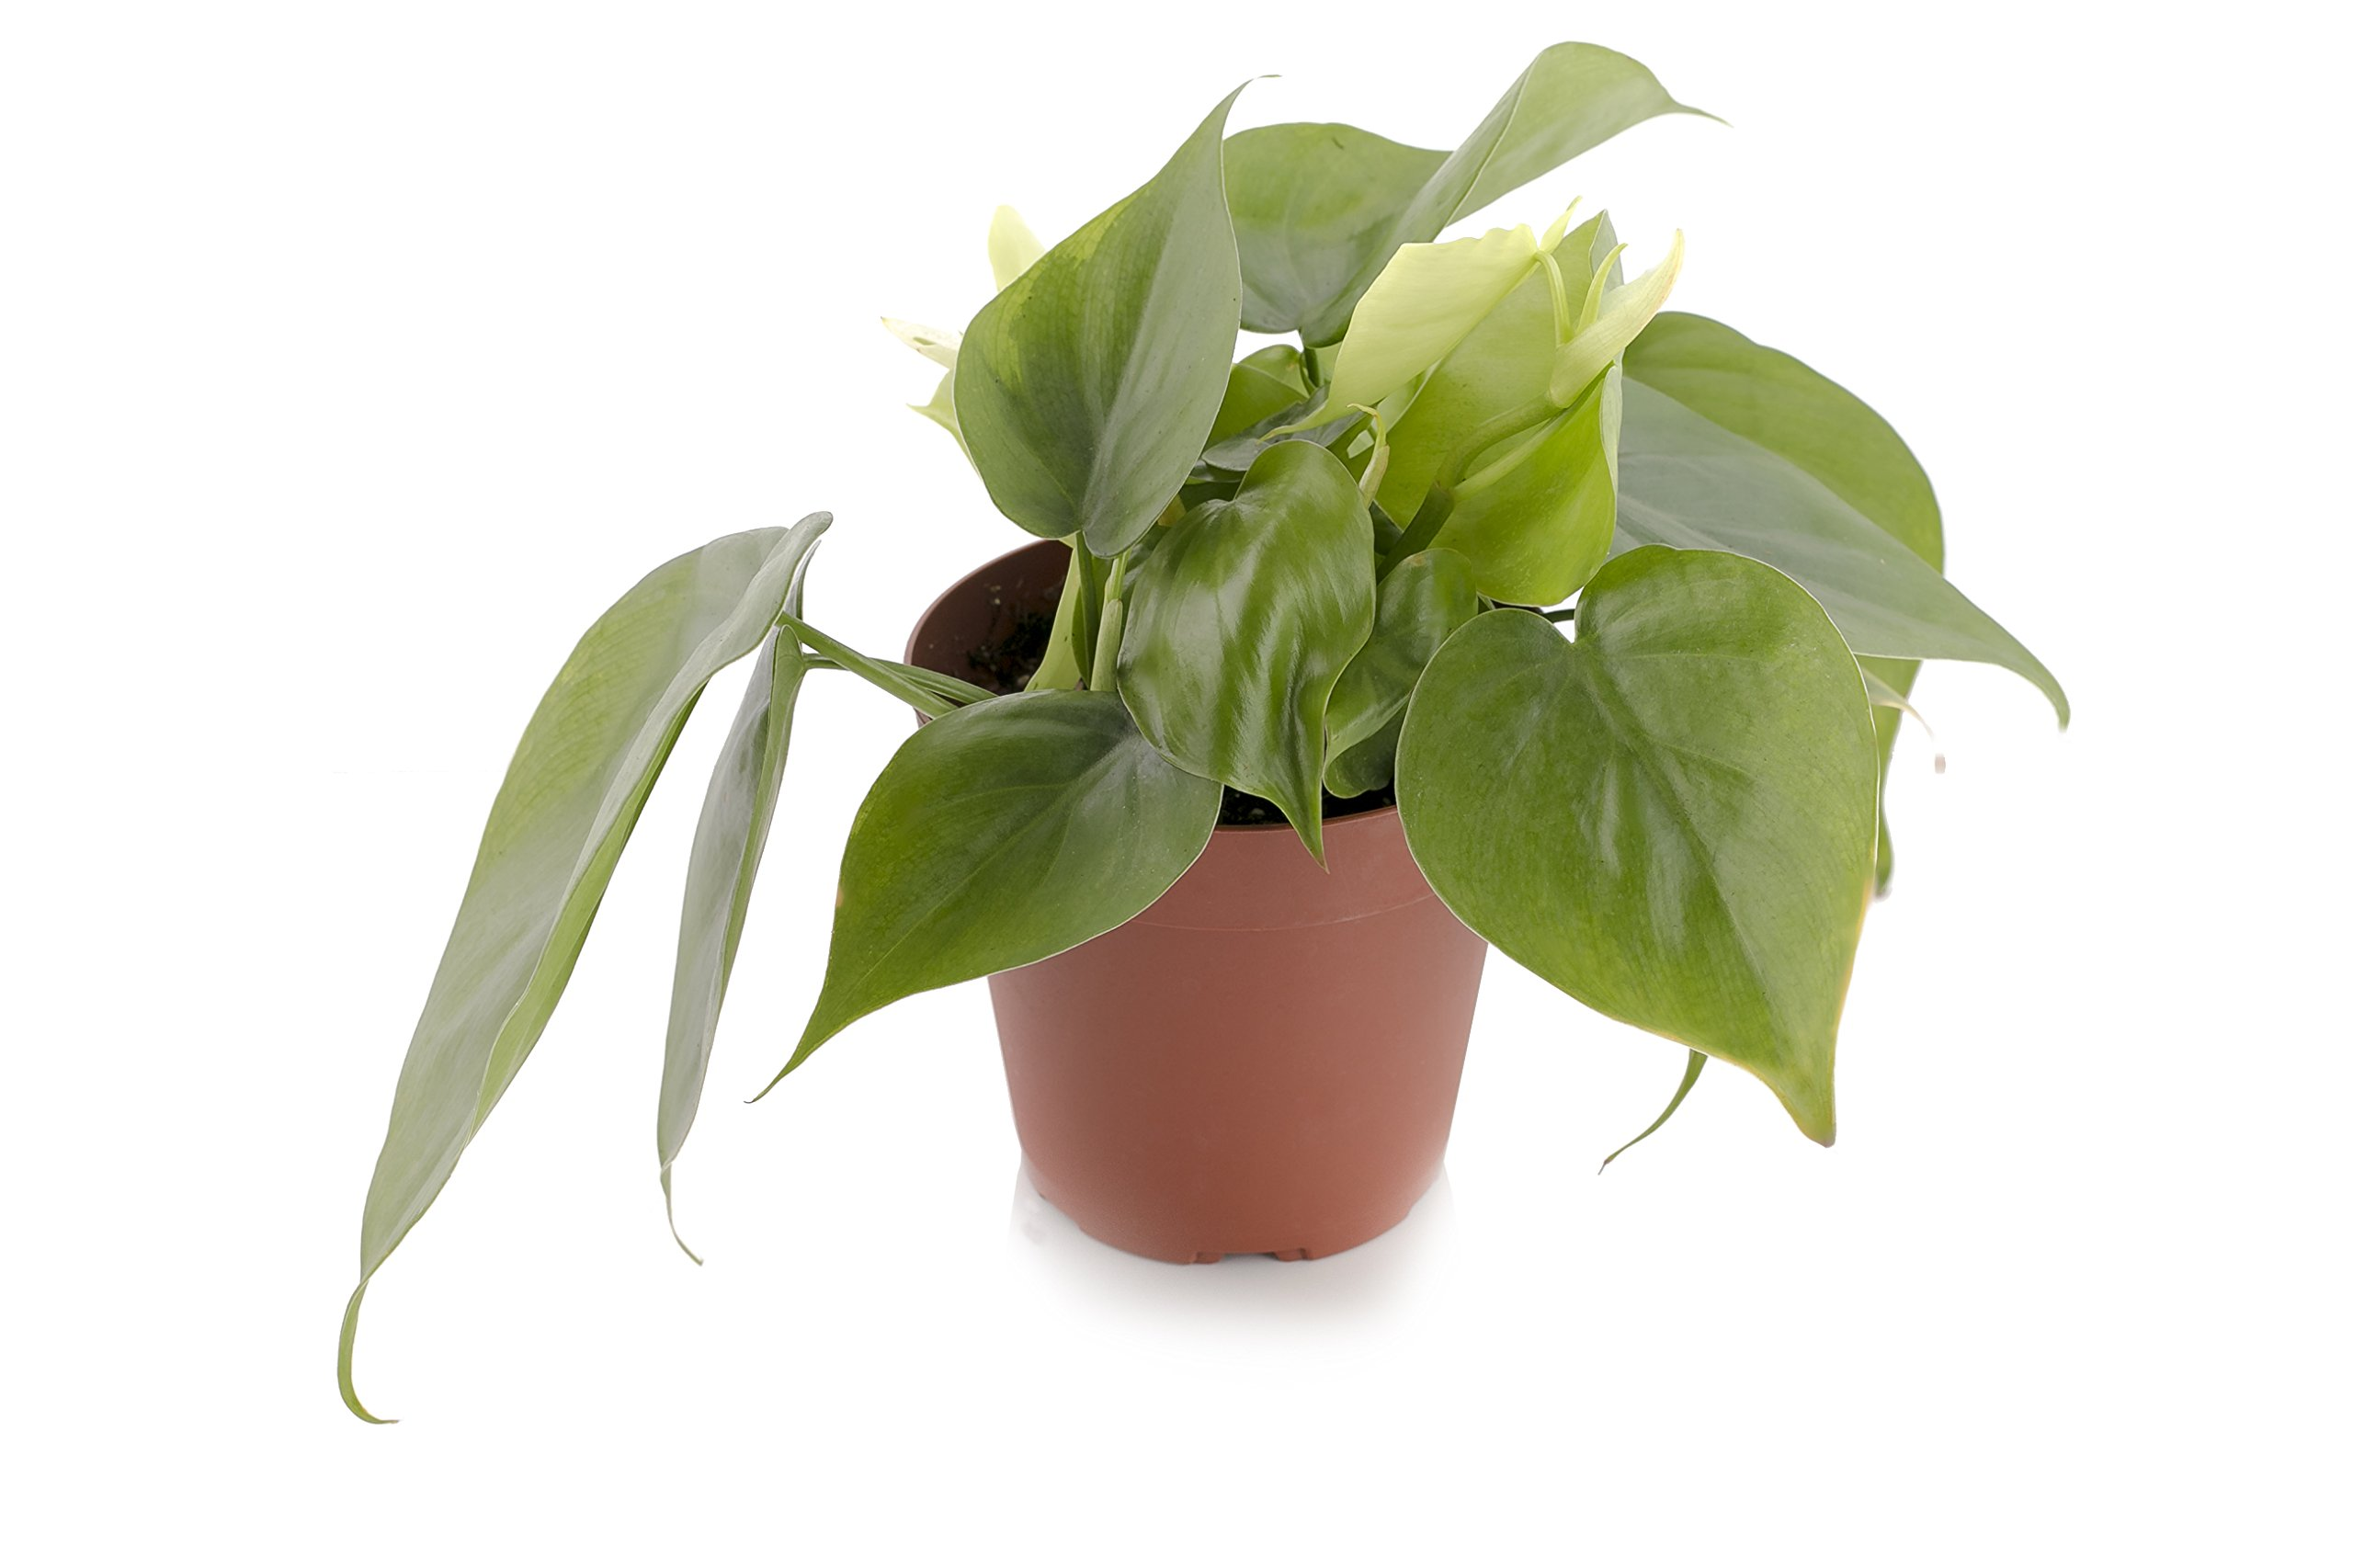 Set of 4 Indoor Plants - Live Potted Plants for Your Home or Office - Includes Red Aglaonema, Snake Plant, Philodendron, and Peace Lily - Great for Interior Decorating and Cleaning the Air by BDWS (Image #2)